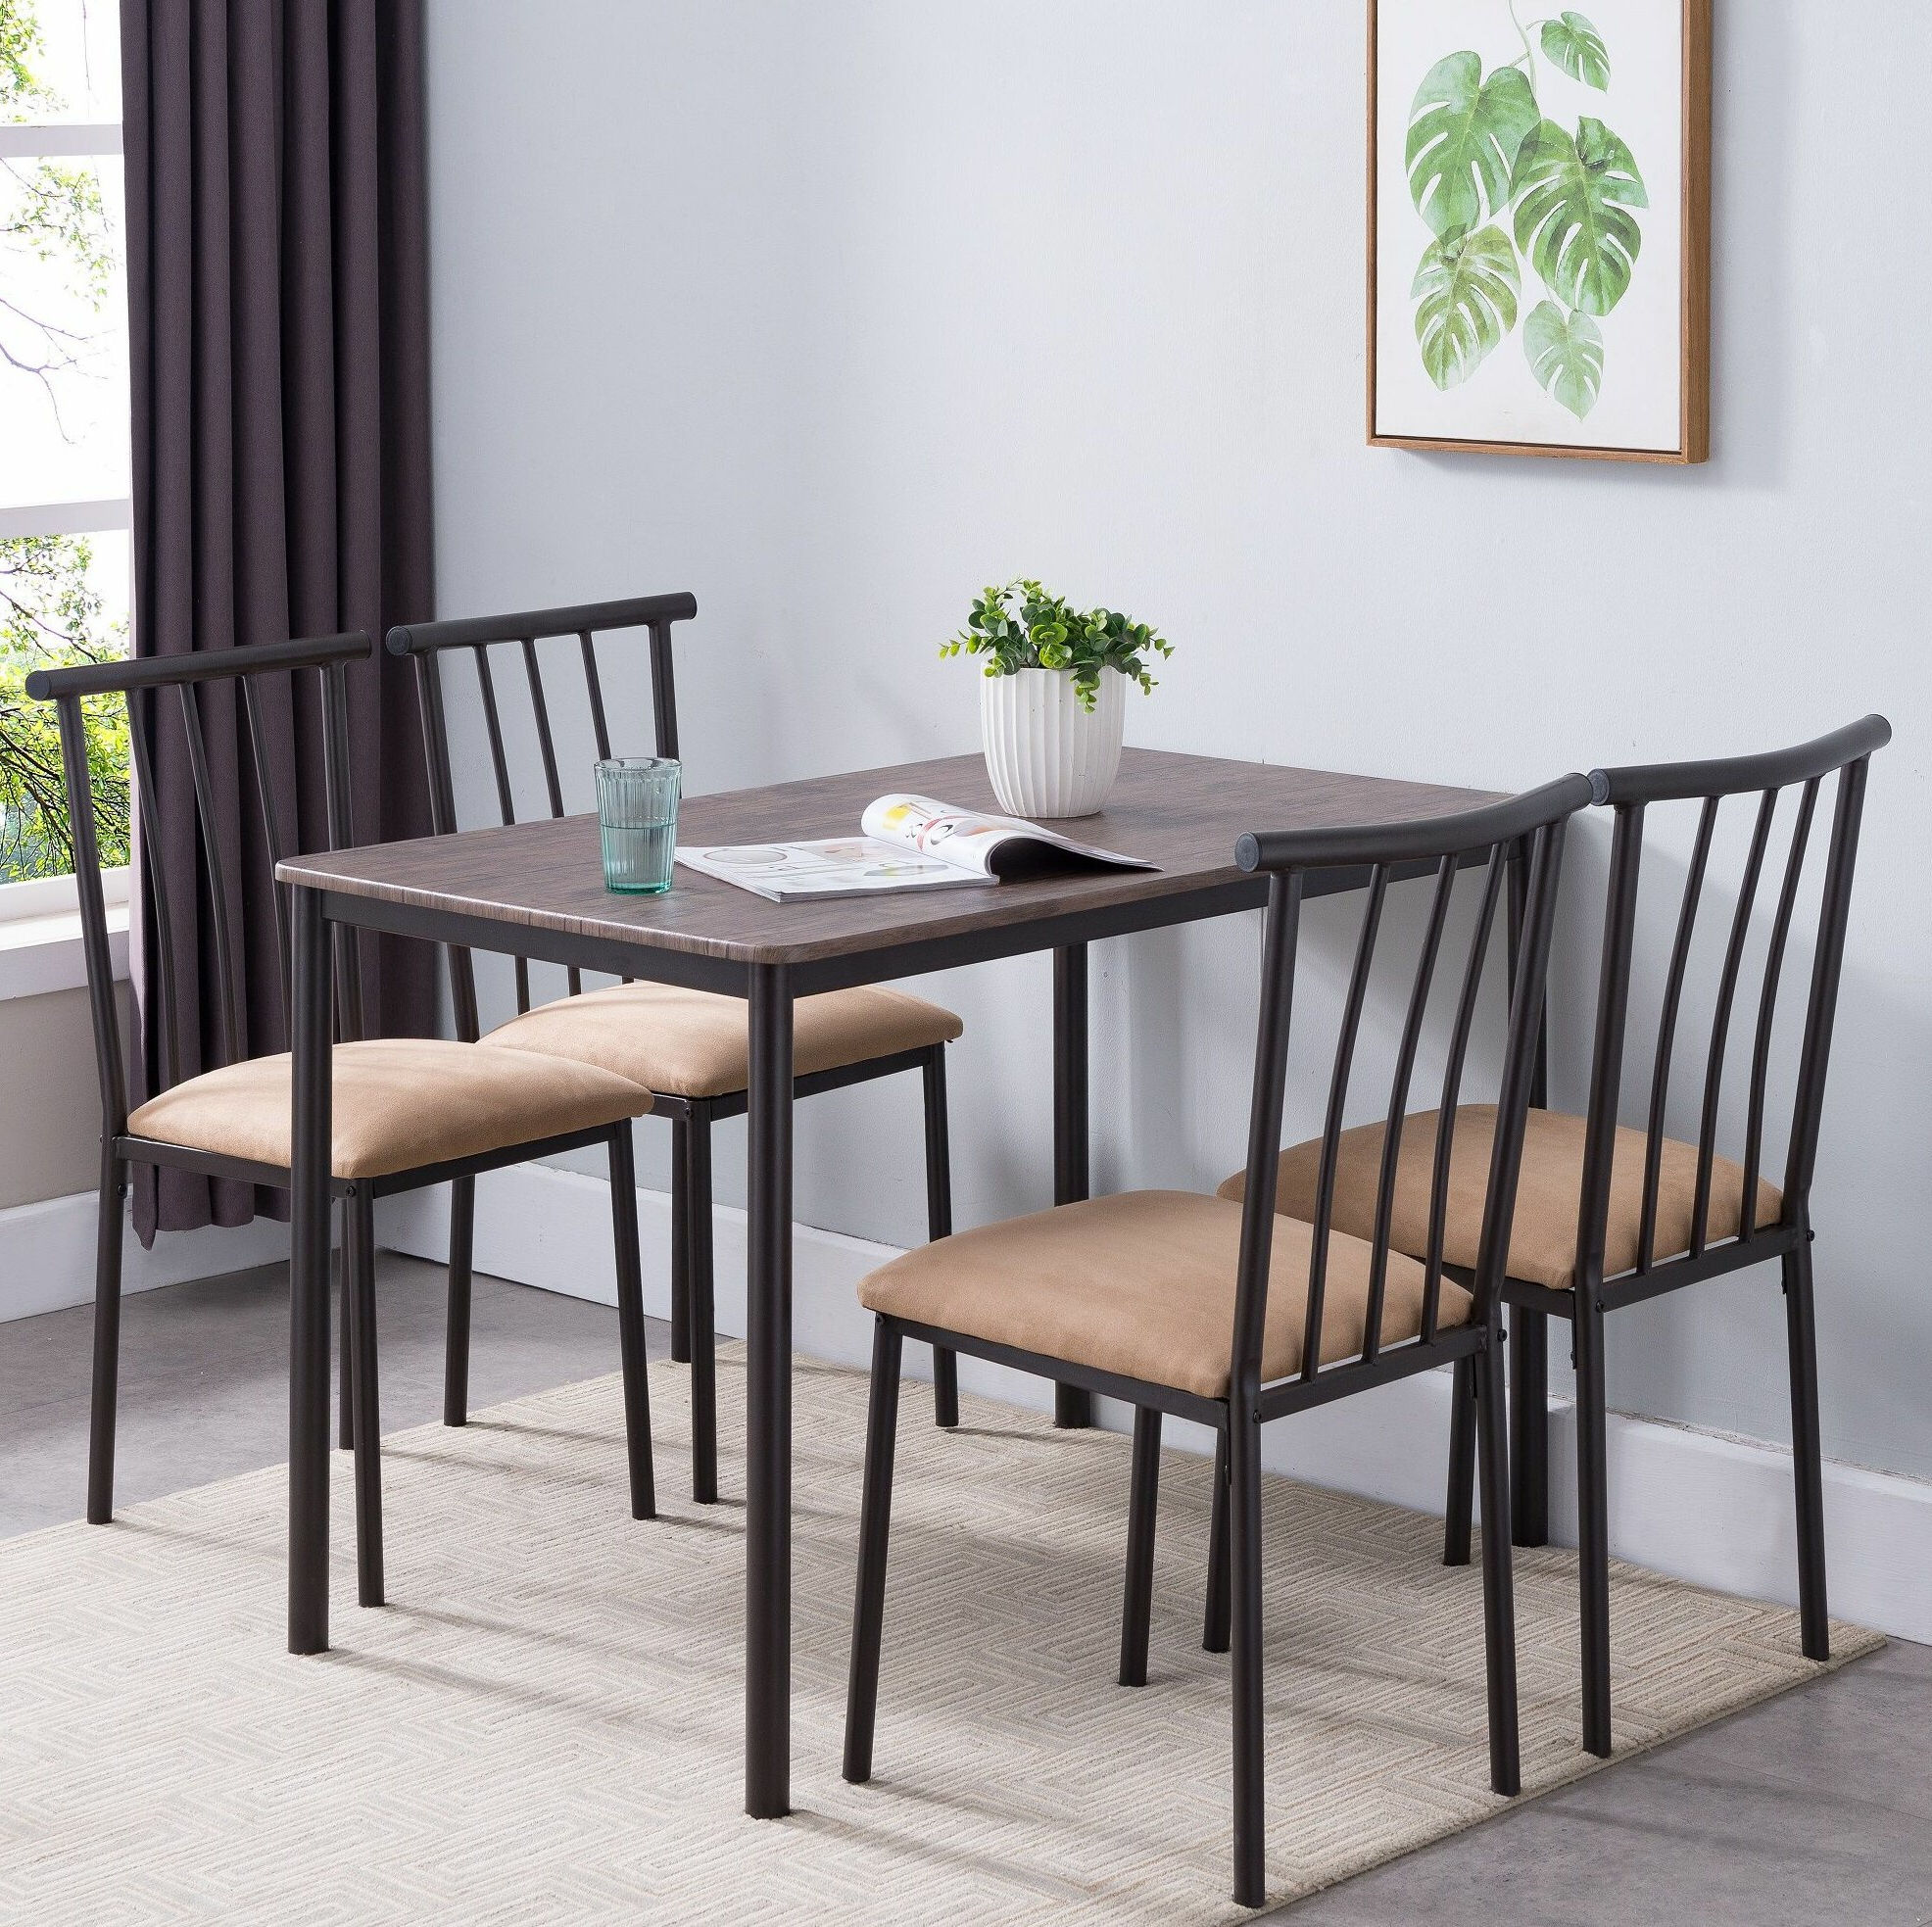 Widely Used Stclair 5 Piece Dining Set Inside Telauges 5 Piece Dining Sets (View 5 of 20)